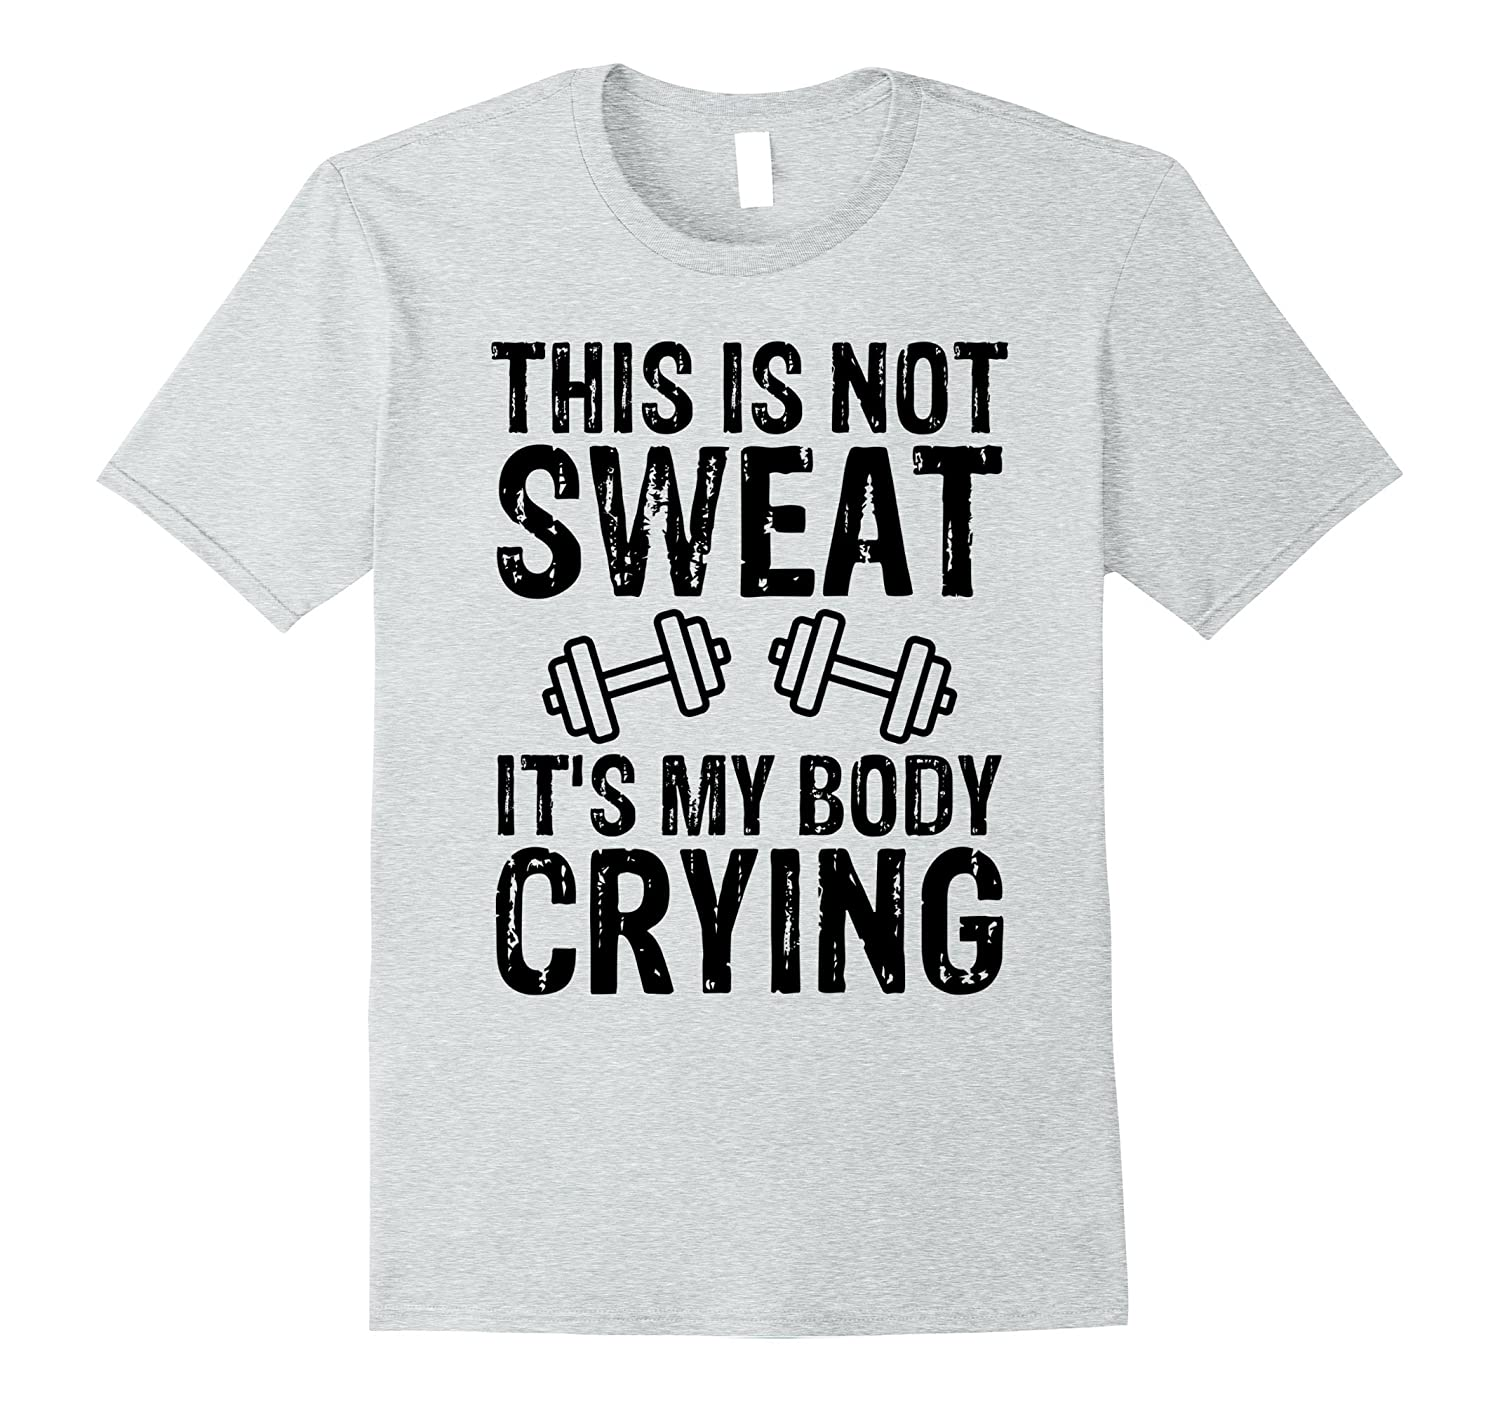 f52a2ad5c Workout Gym T Shirt This Is Not Sweat It's My Body Crying-RT ...